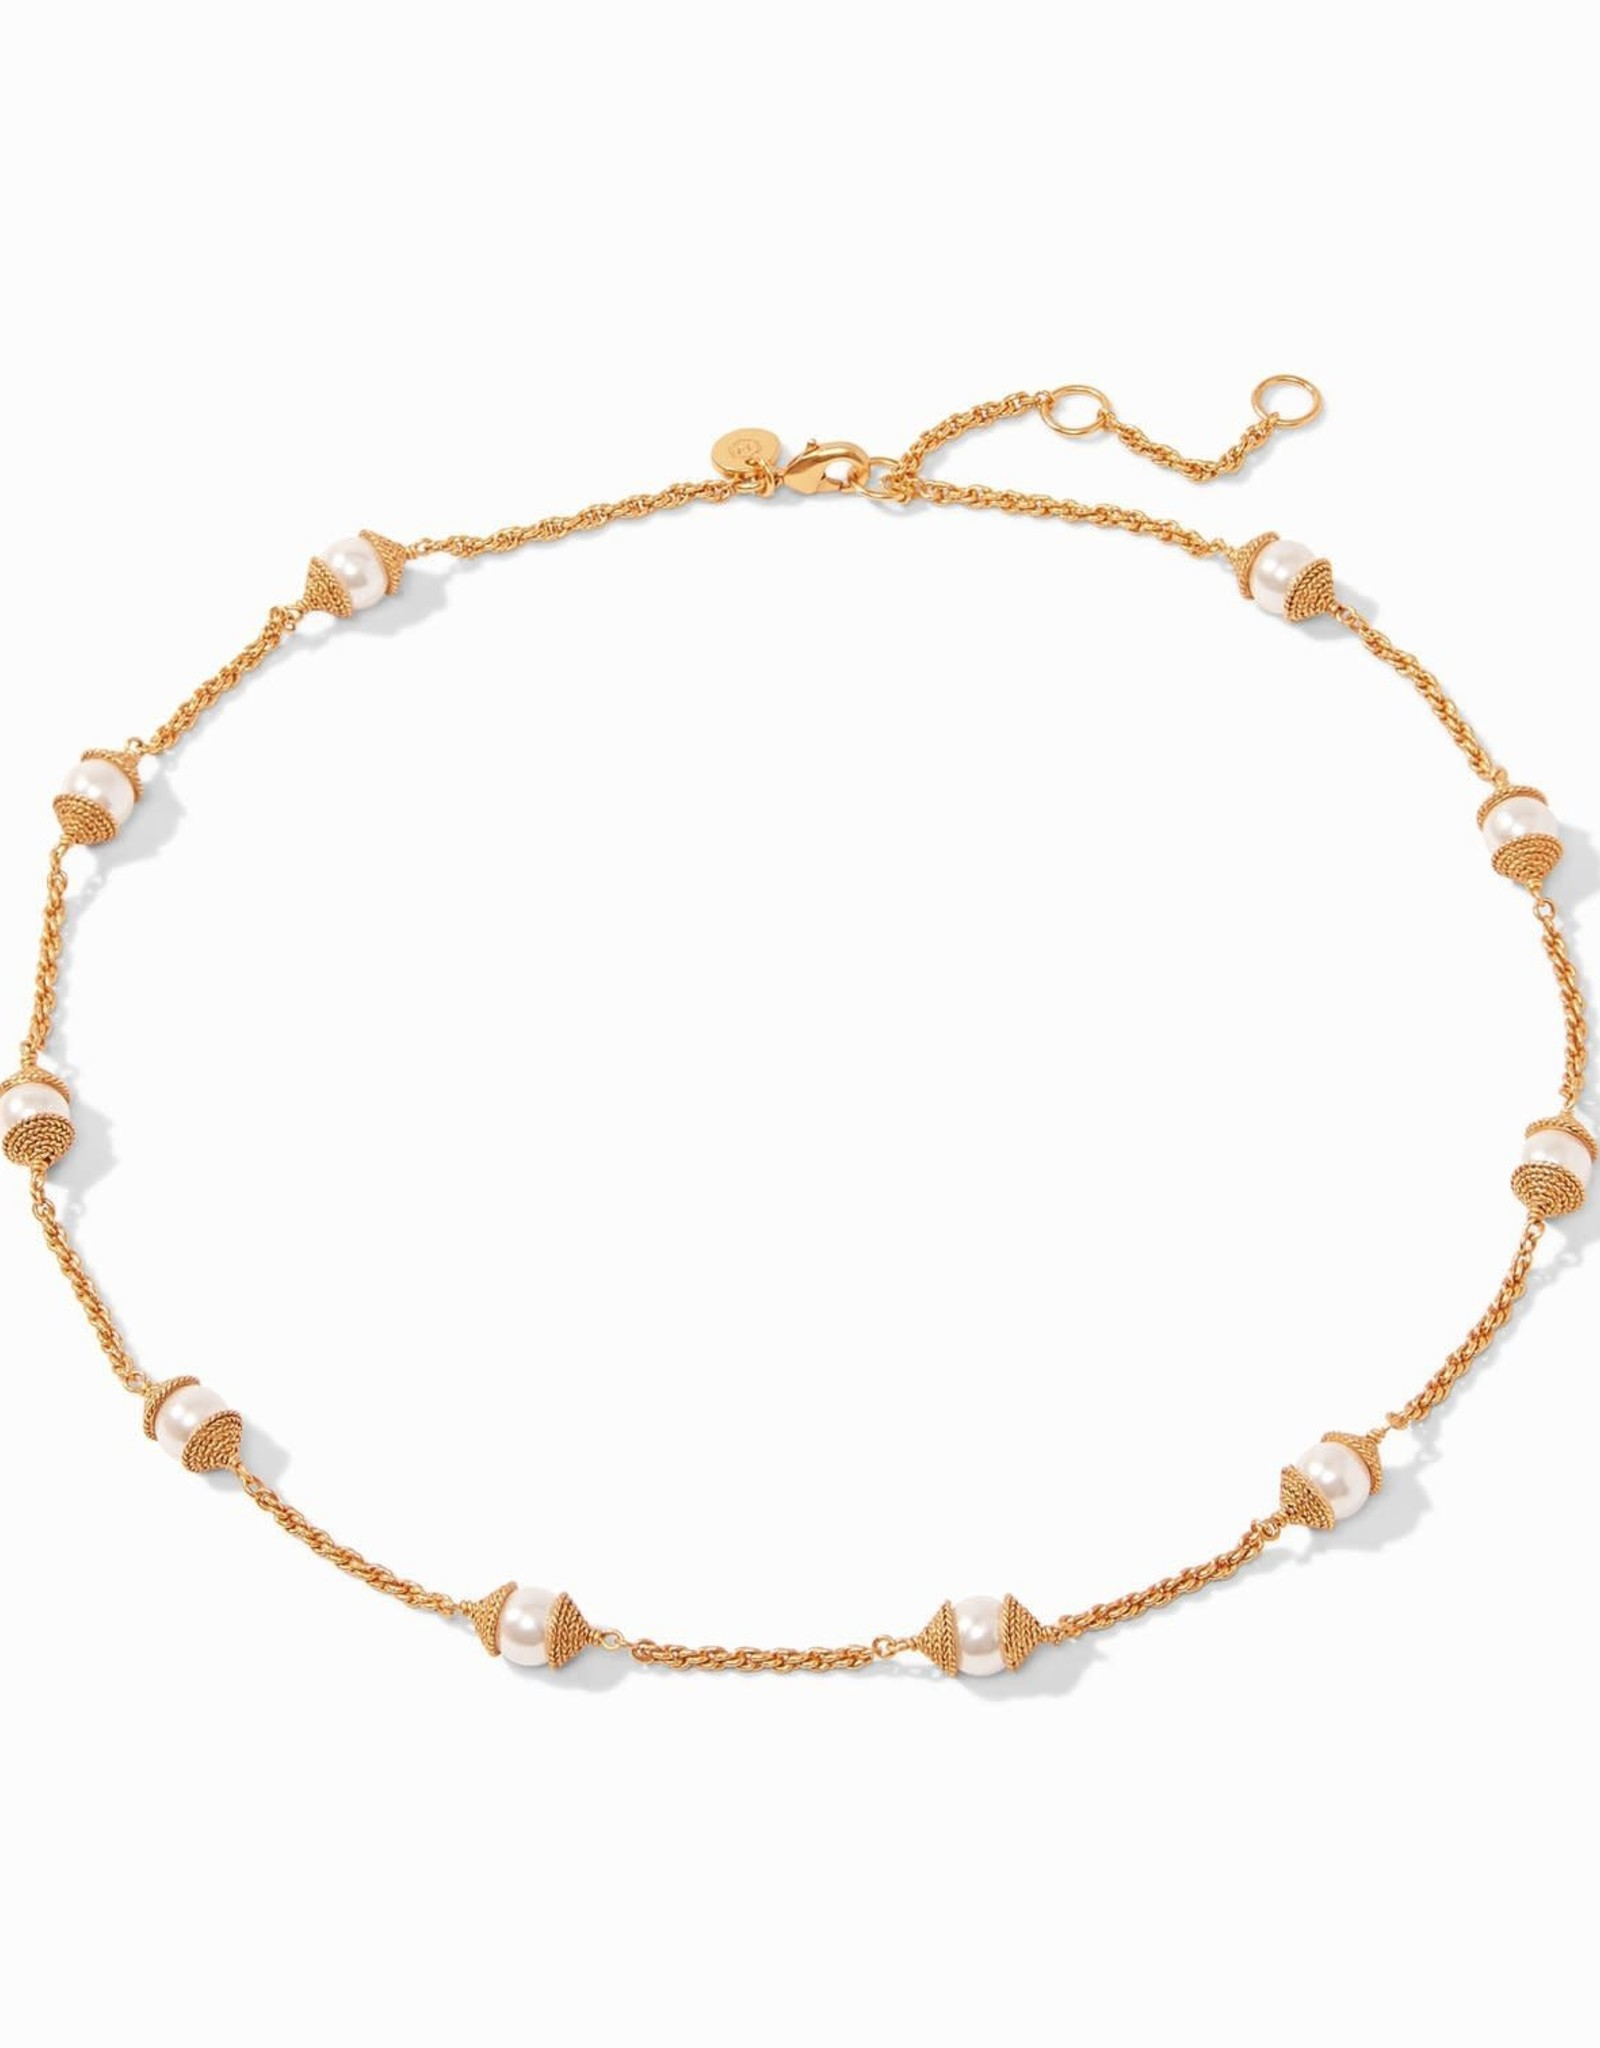 Julie Vos Calypso Pearl Delicate Station Necklace Pearl